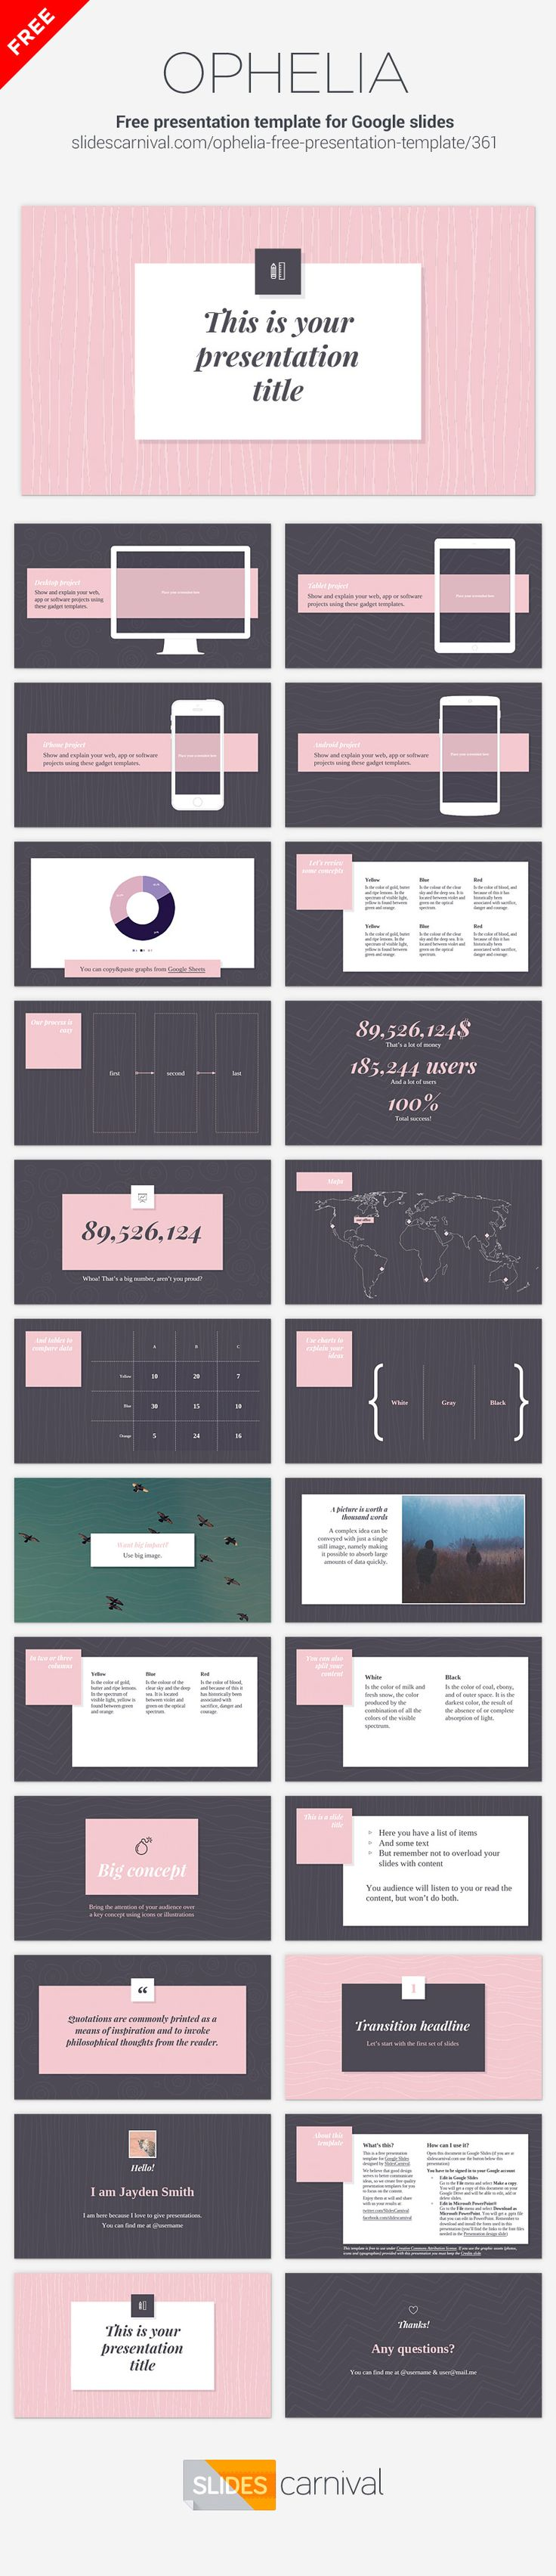 84 best Free presentation templates images on Pinterest | Free ...